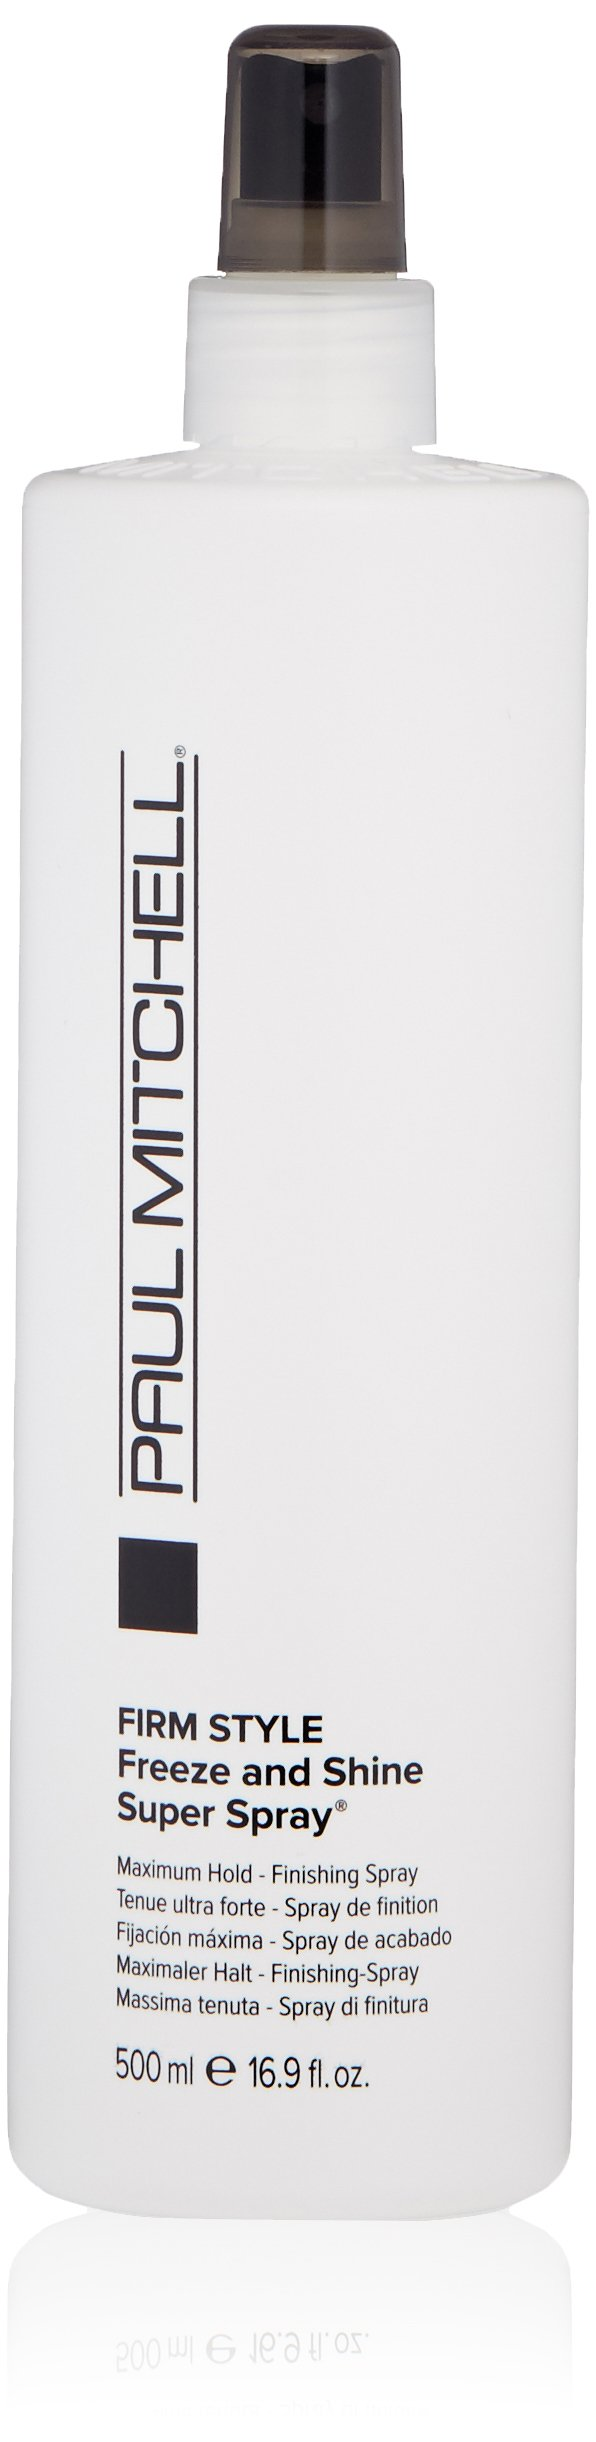 Paul Mitchell Freeze and Shine Super Spray,16.9 Fl Oz